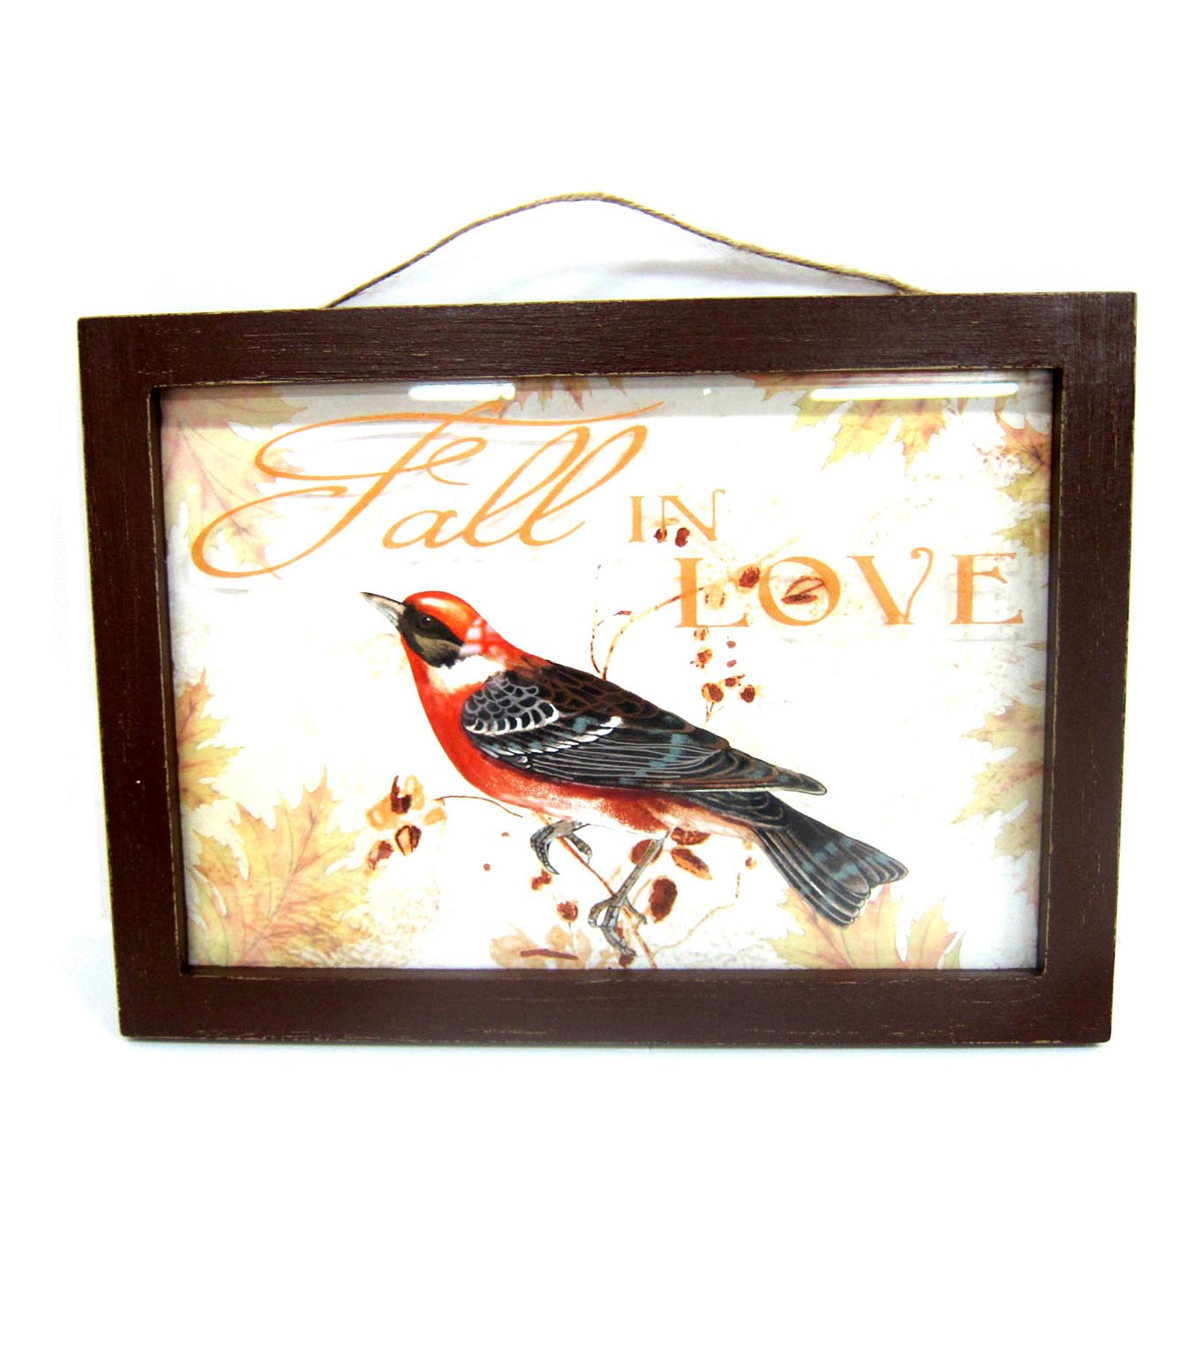 Art of Autumn Glass Wall Decor-Fall in Love